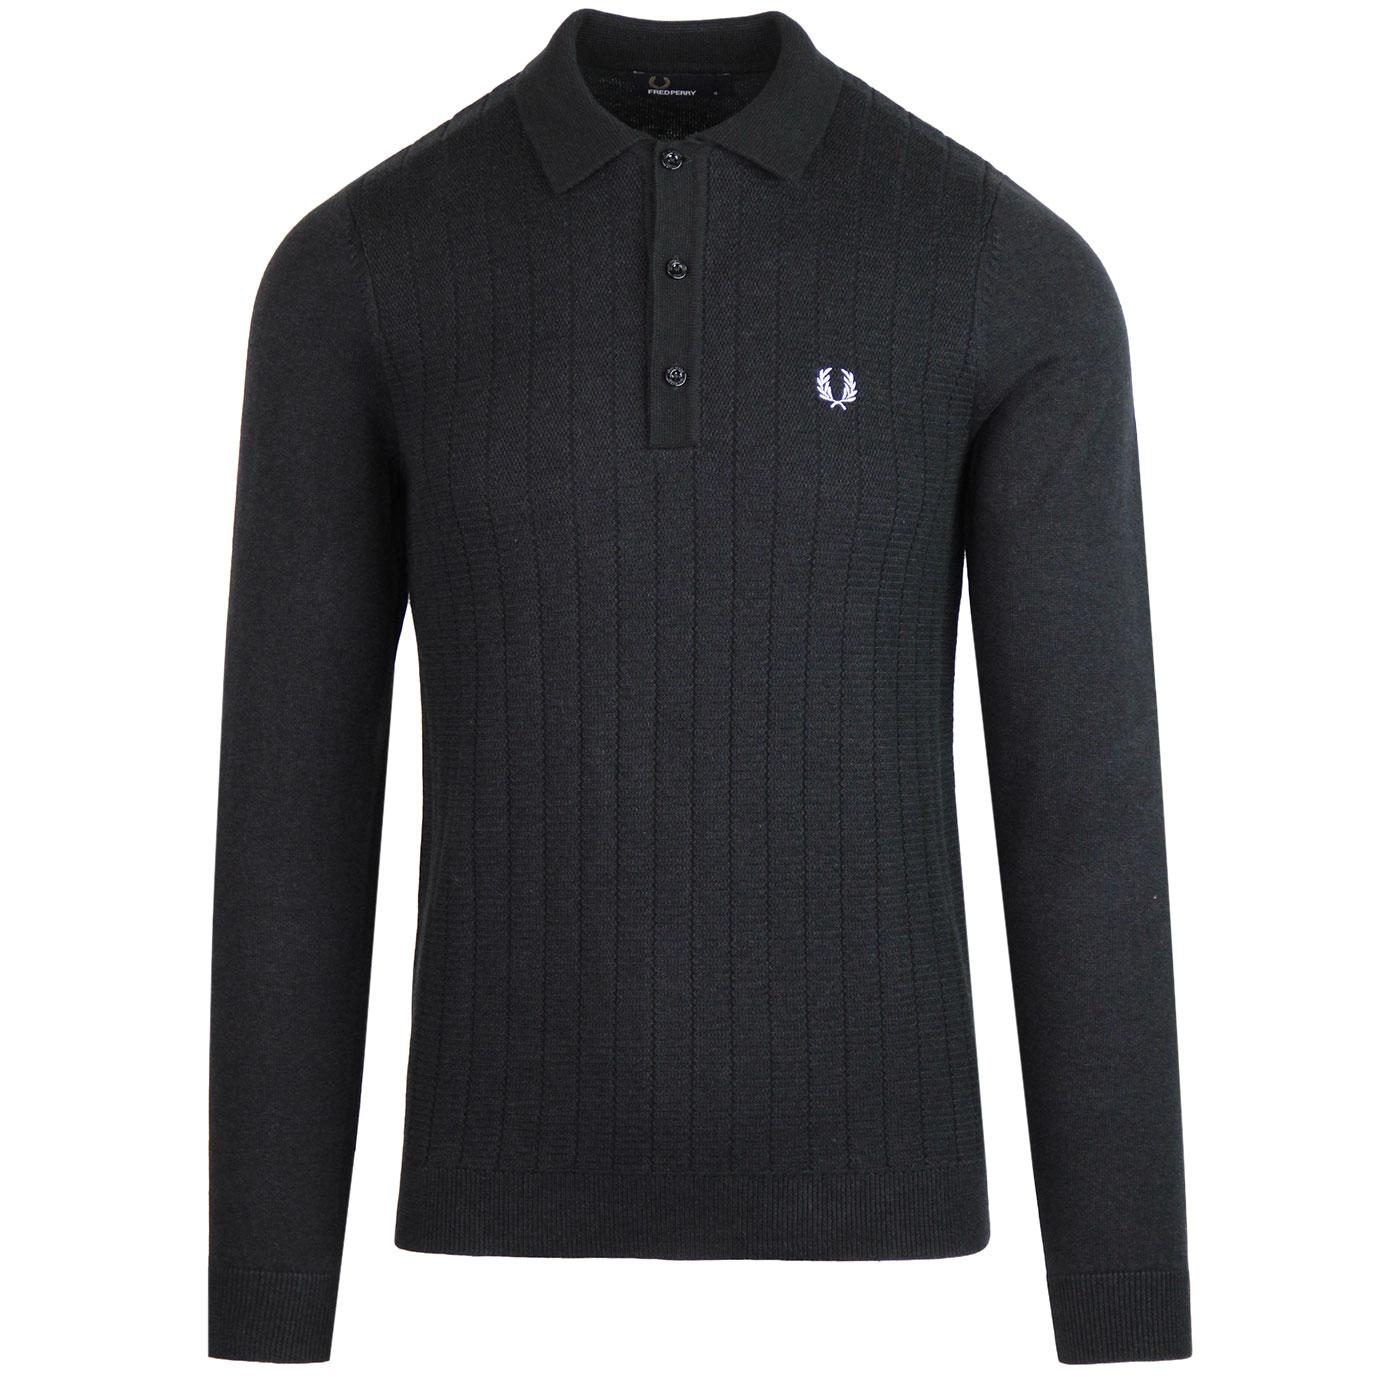 FRED PERRY Mod Textured Ribbed Knit Polo Shirt BM